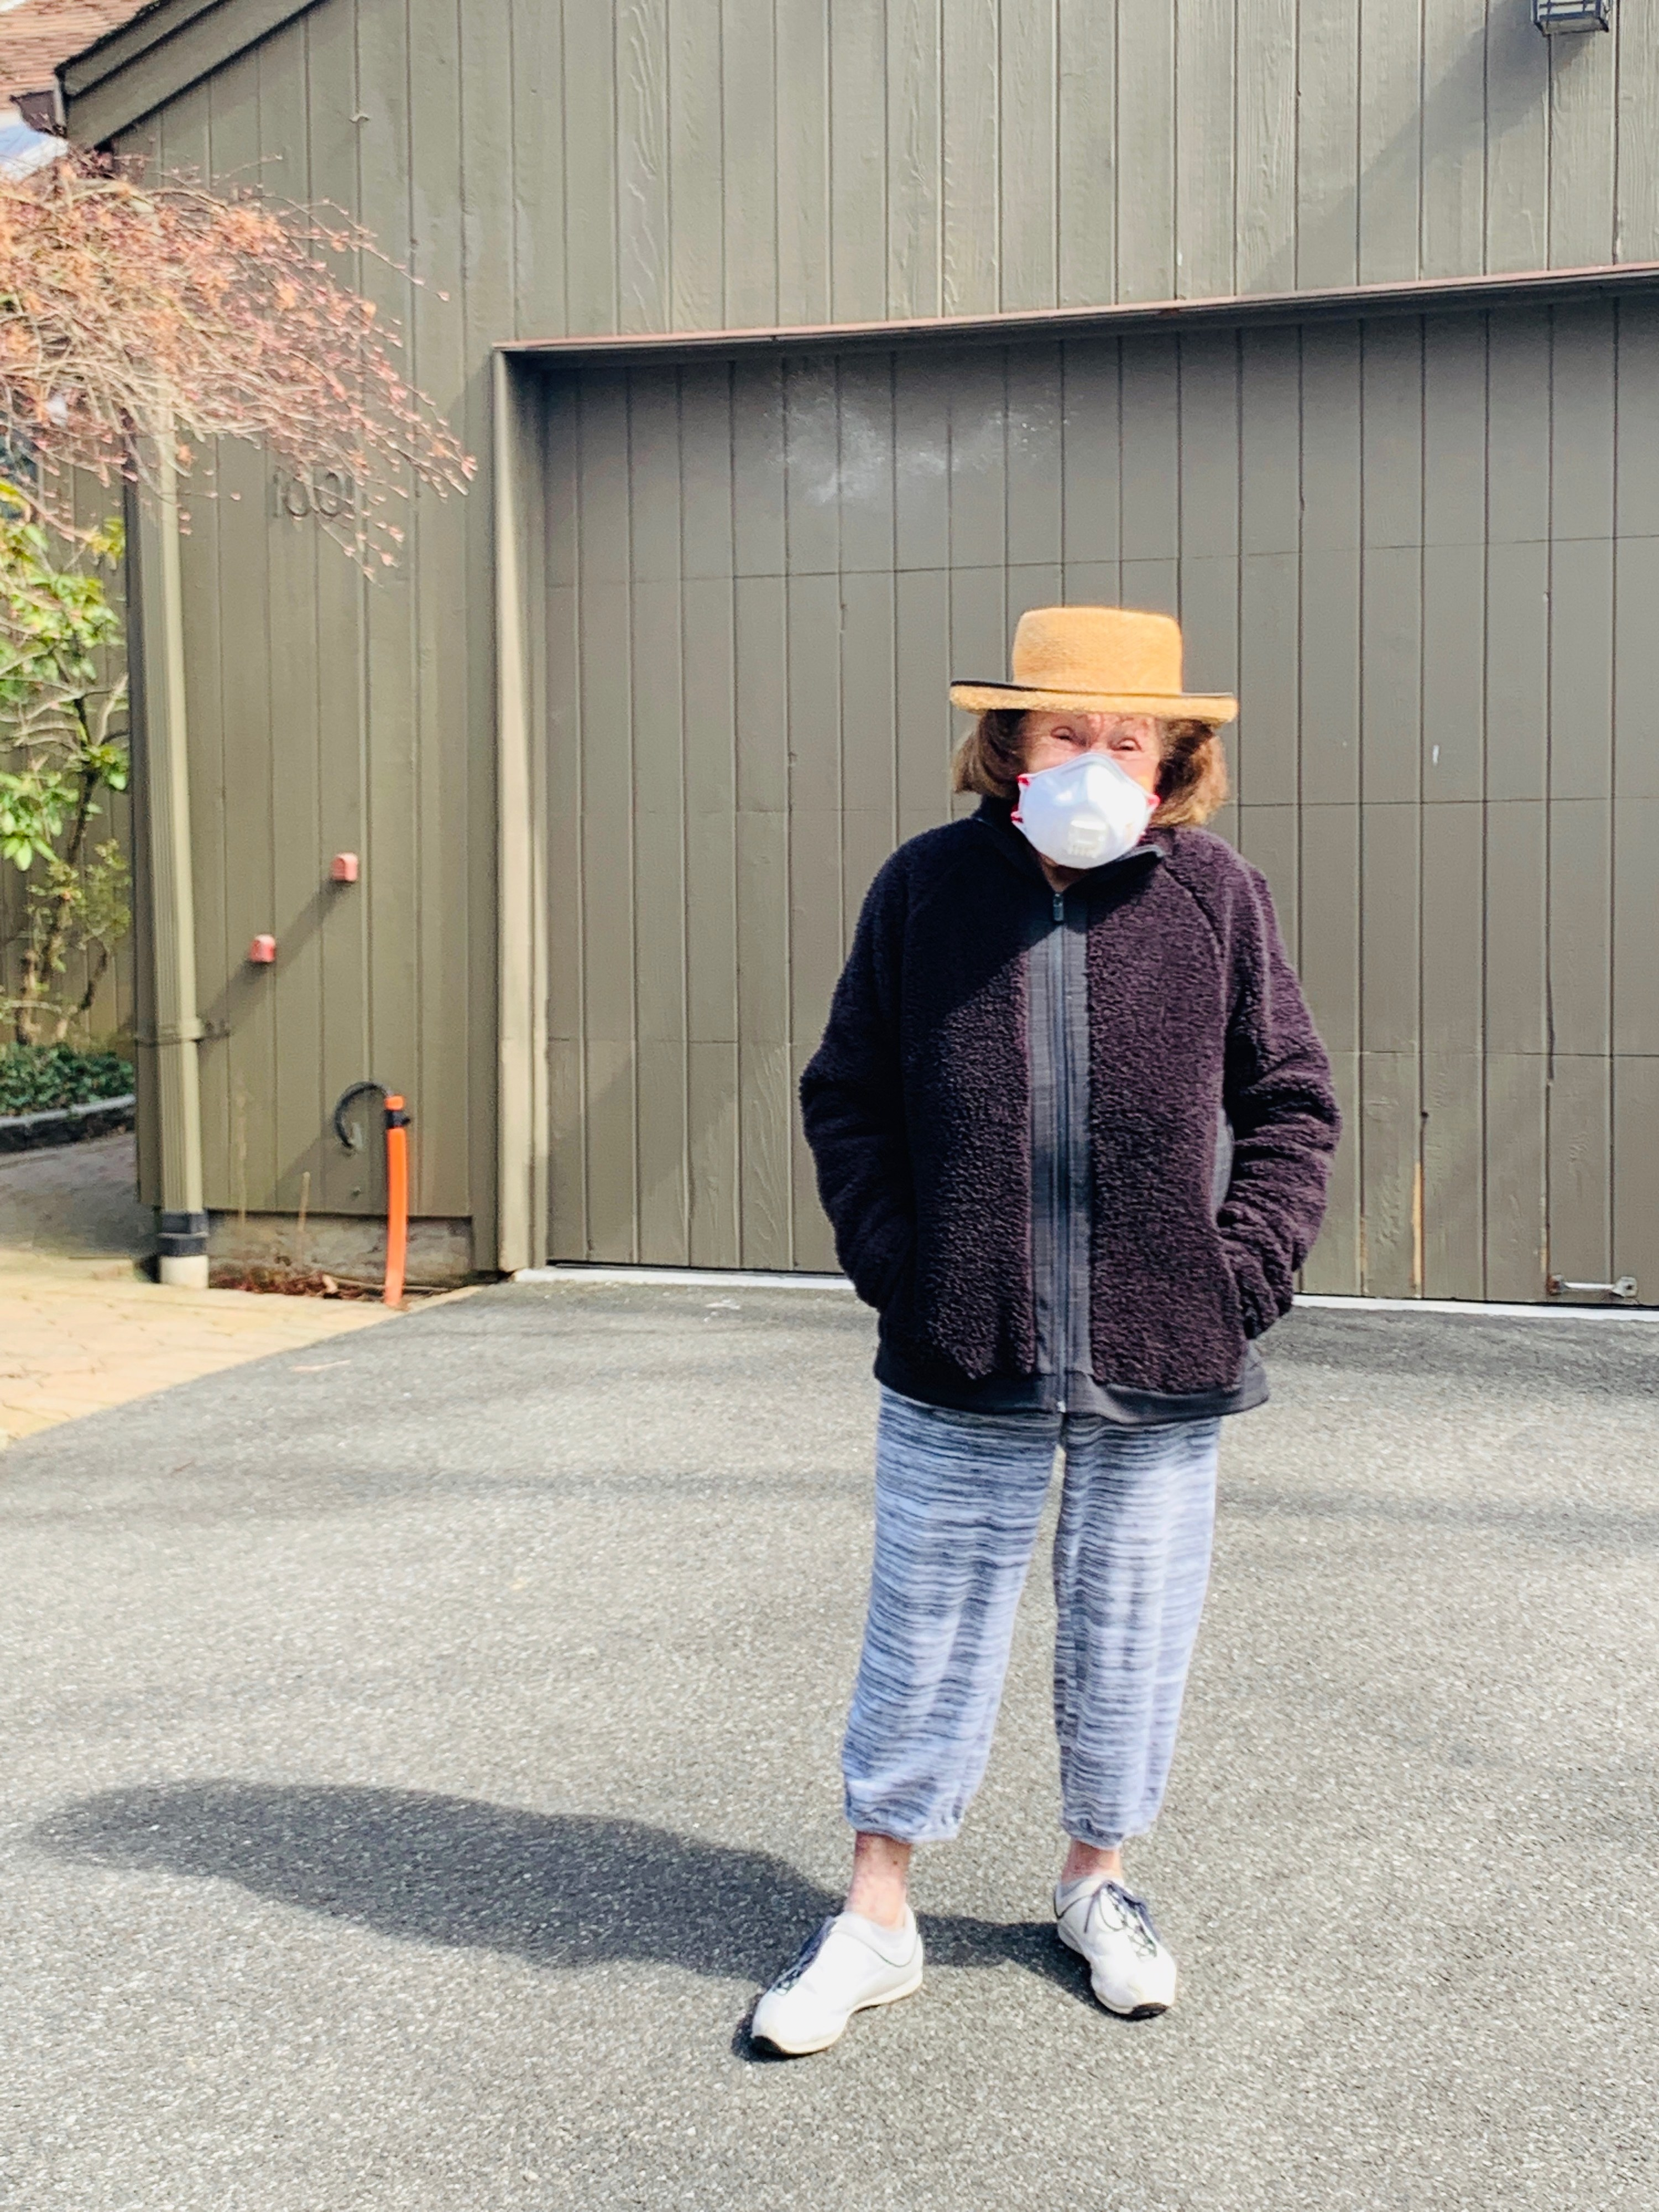 My grandmother standing outside her home in a beach hat and mask.